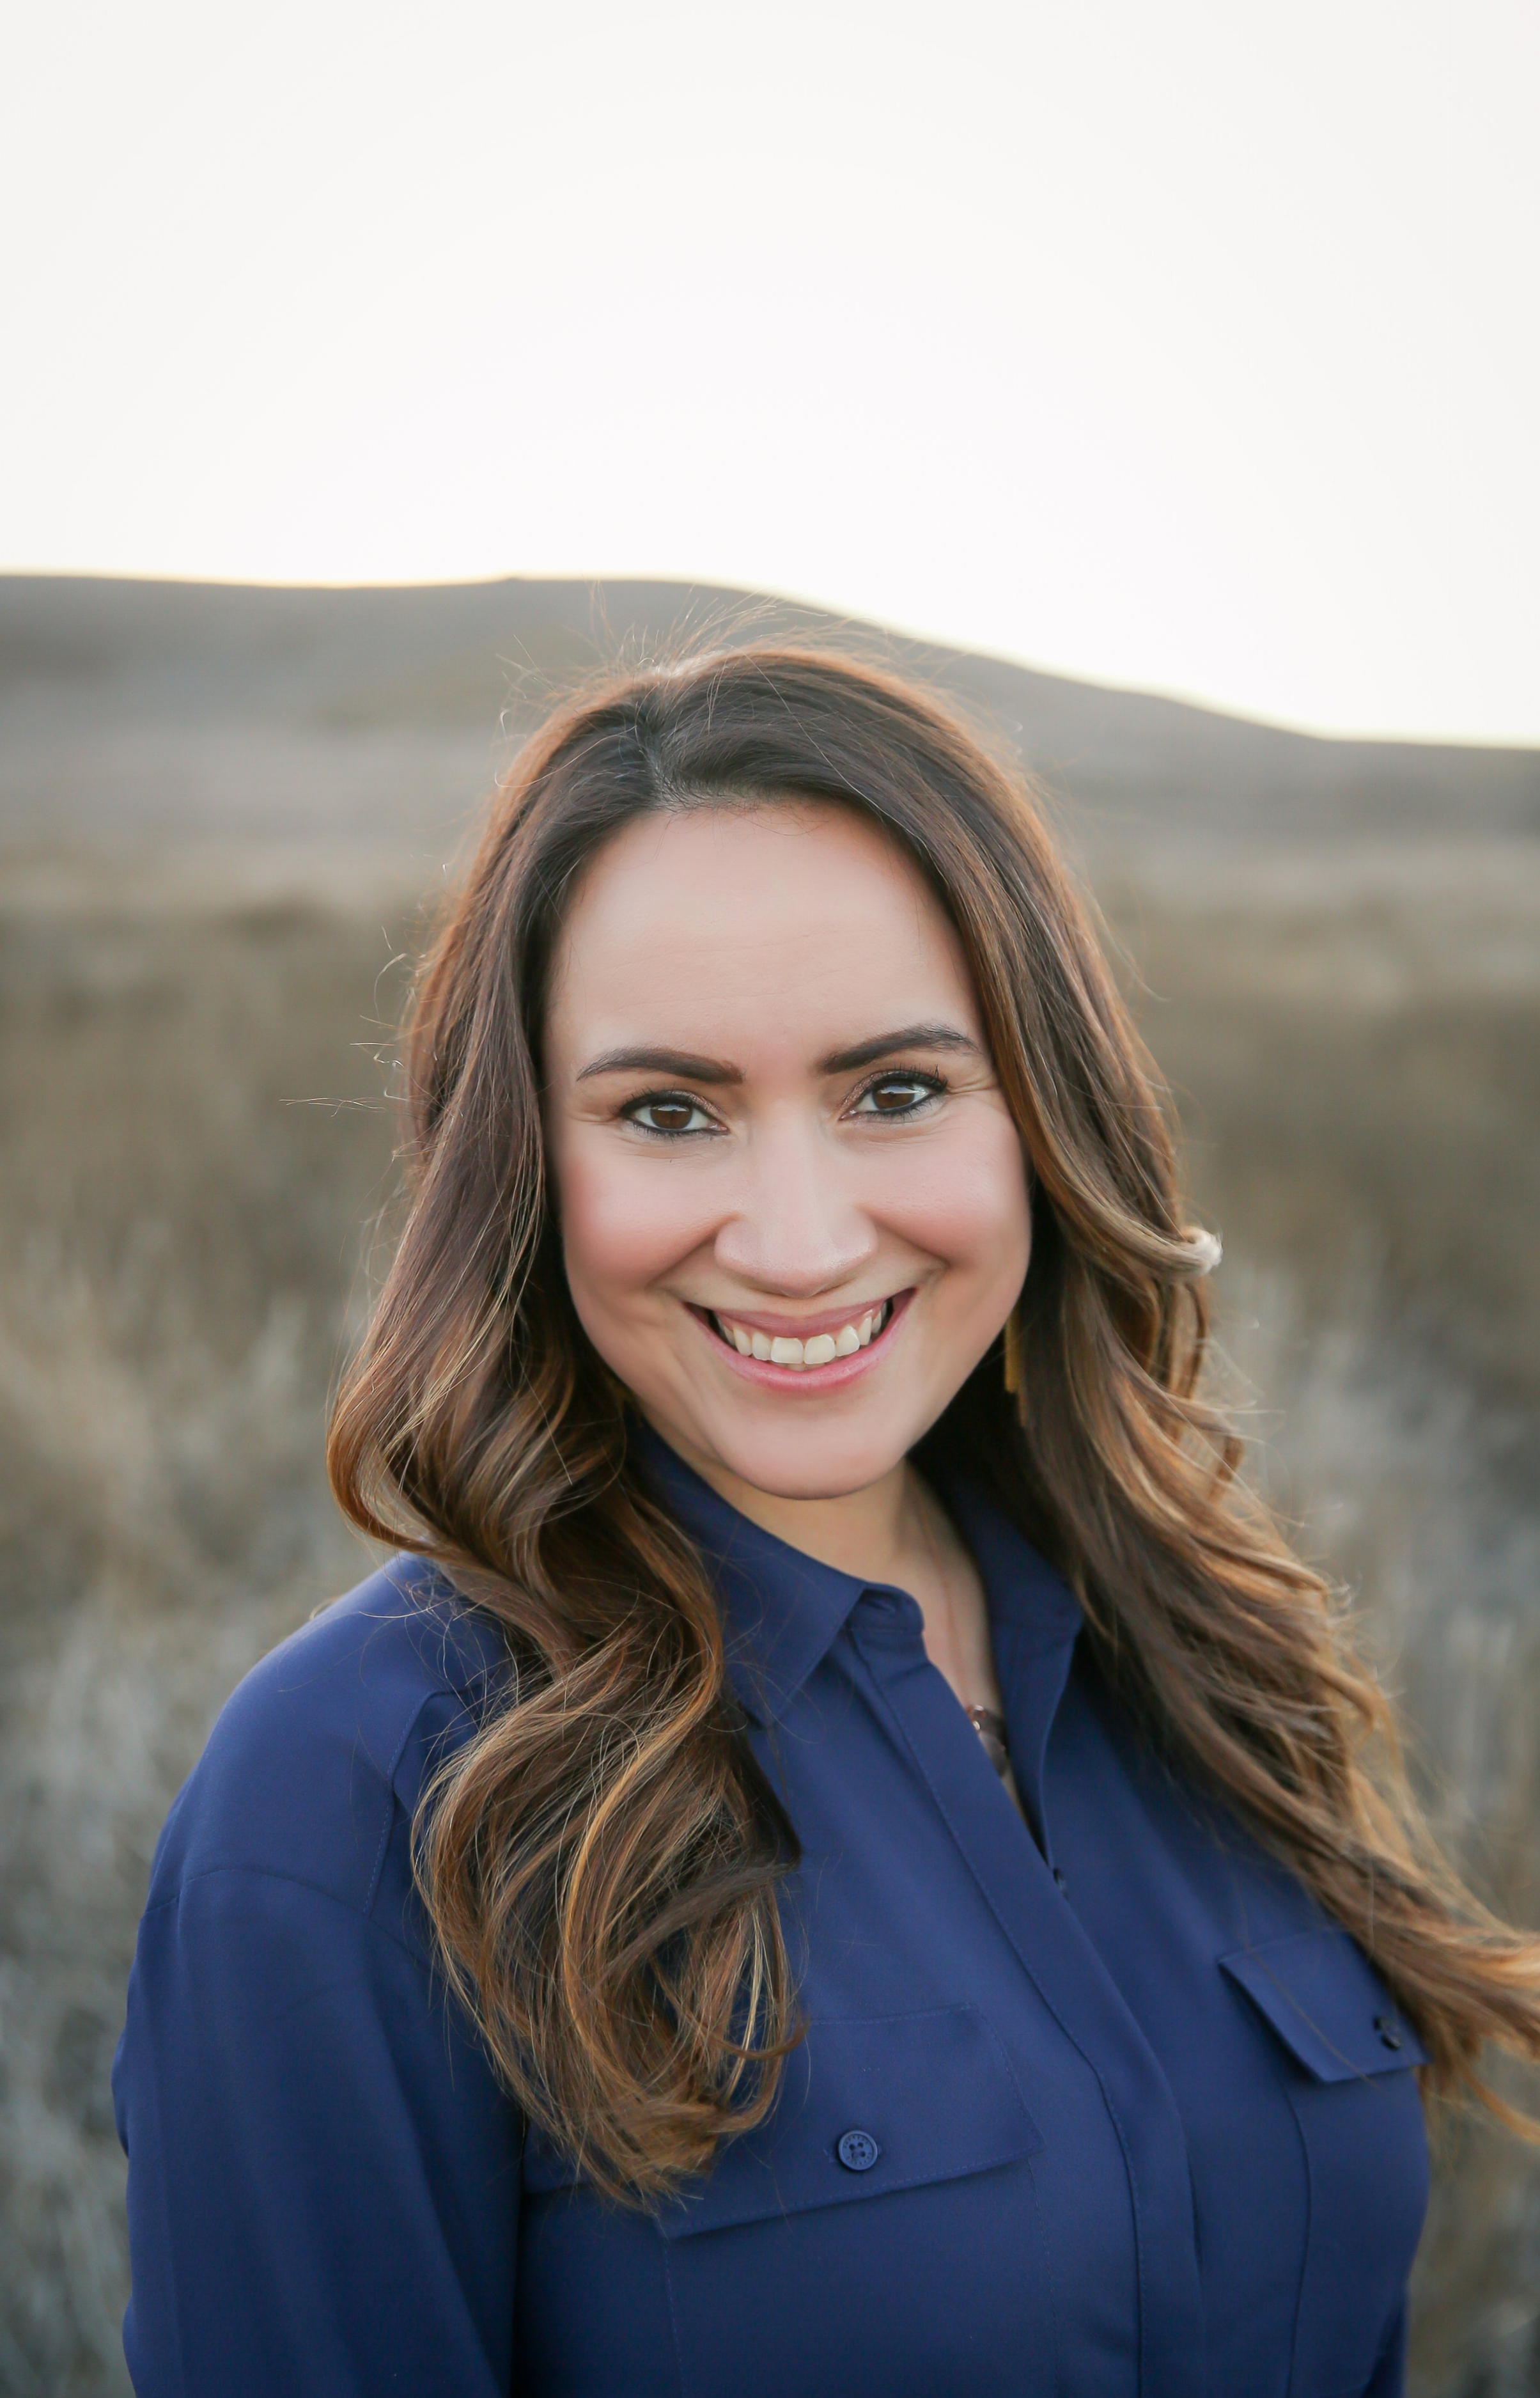 Joanna Martindale, MA, BCBA - Joanna is the owner and founder of Baby Sleep Concierge. She holds a Masters degree in Clinical Psychology, is a Board Certified Behavior Analyst, and a Certified Maternity and Child Sleep Consultant.